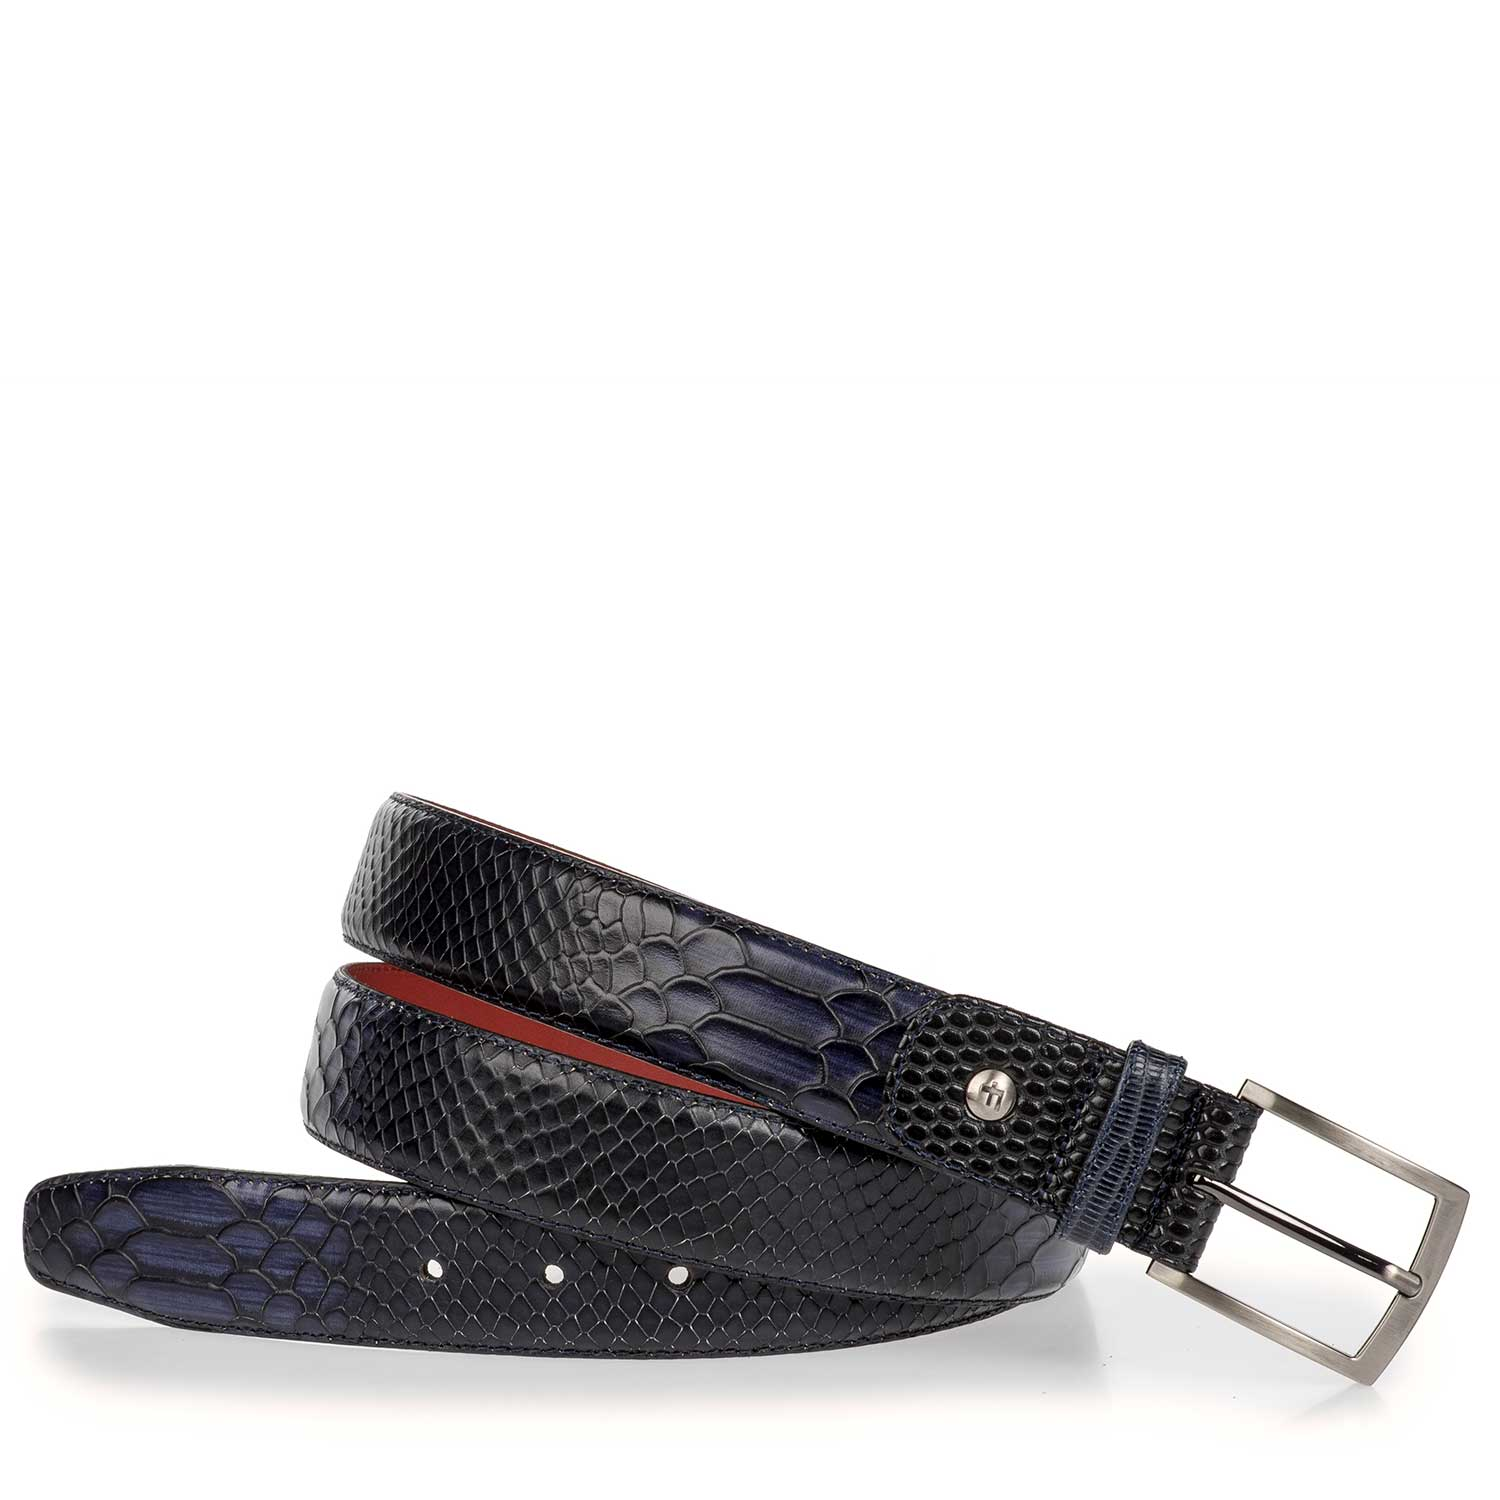 75188/12 - Blue leather belt with snake print